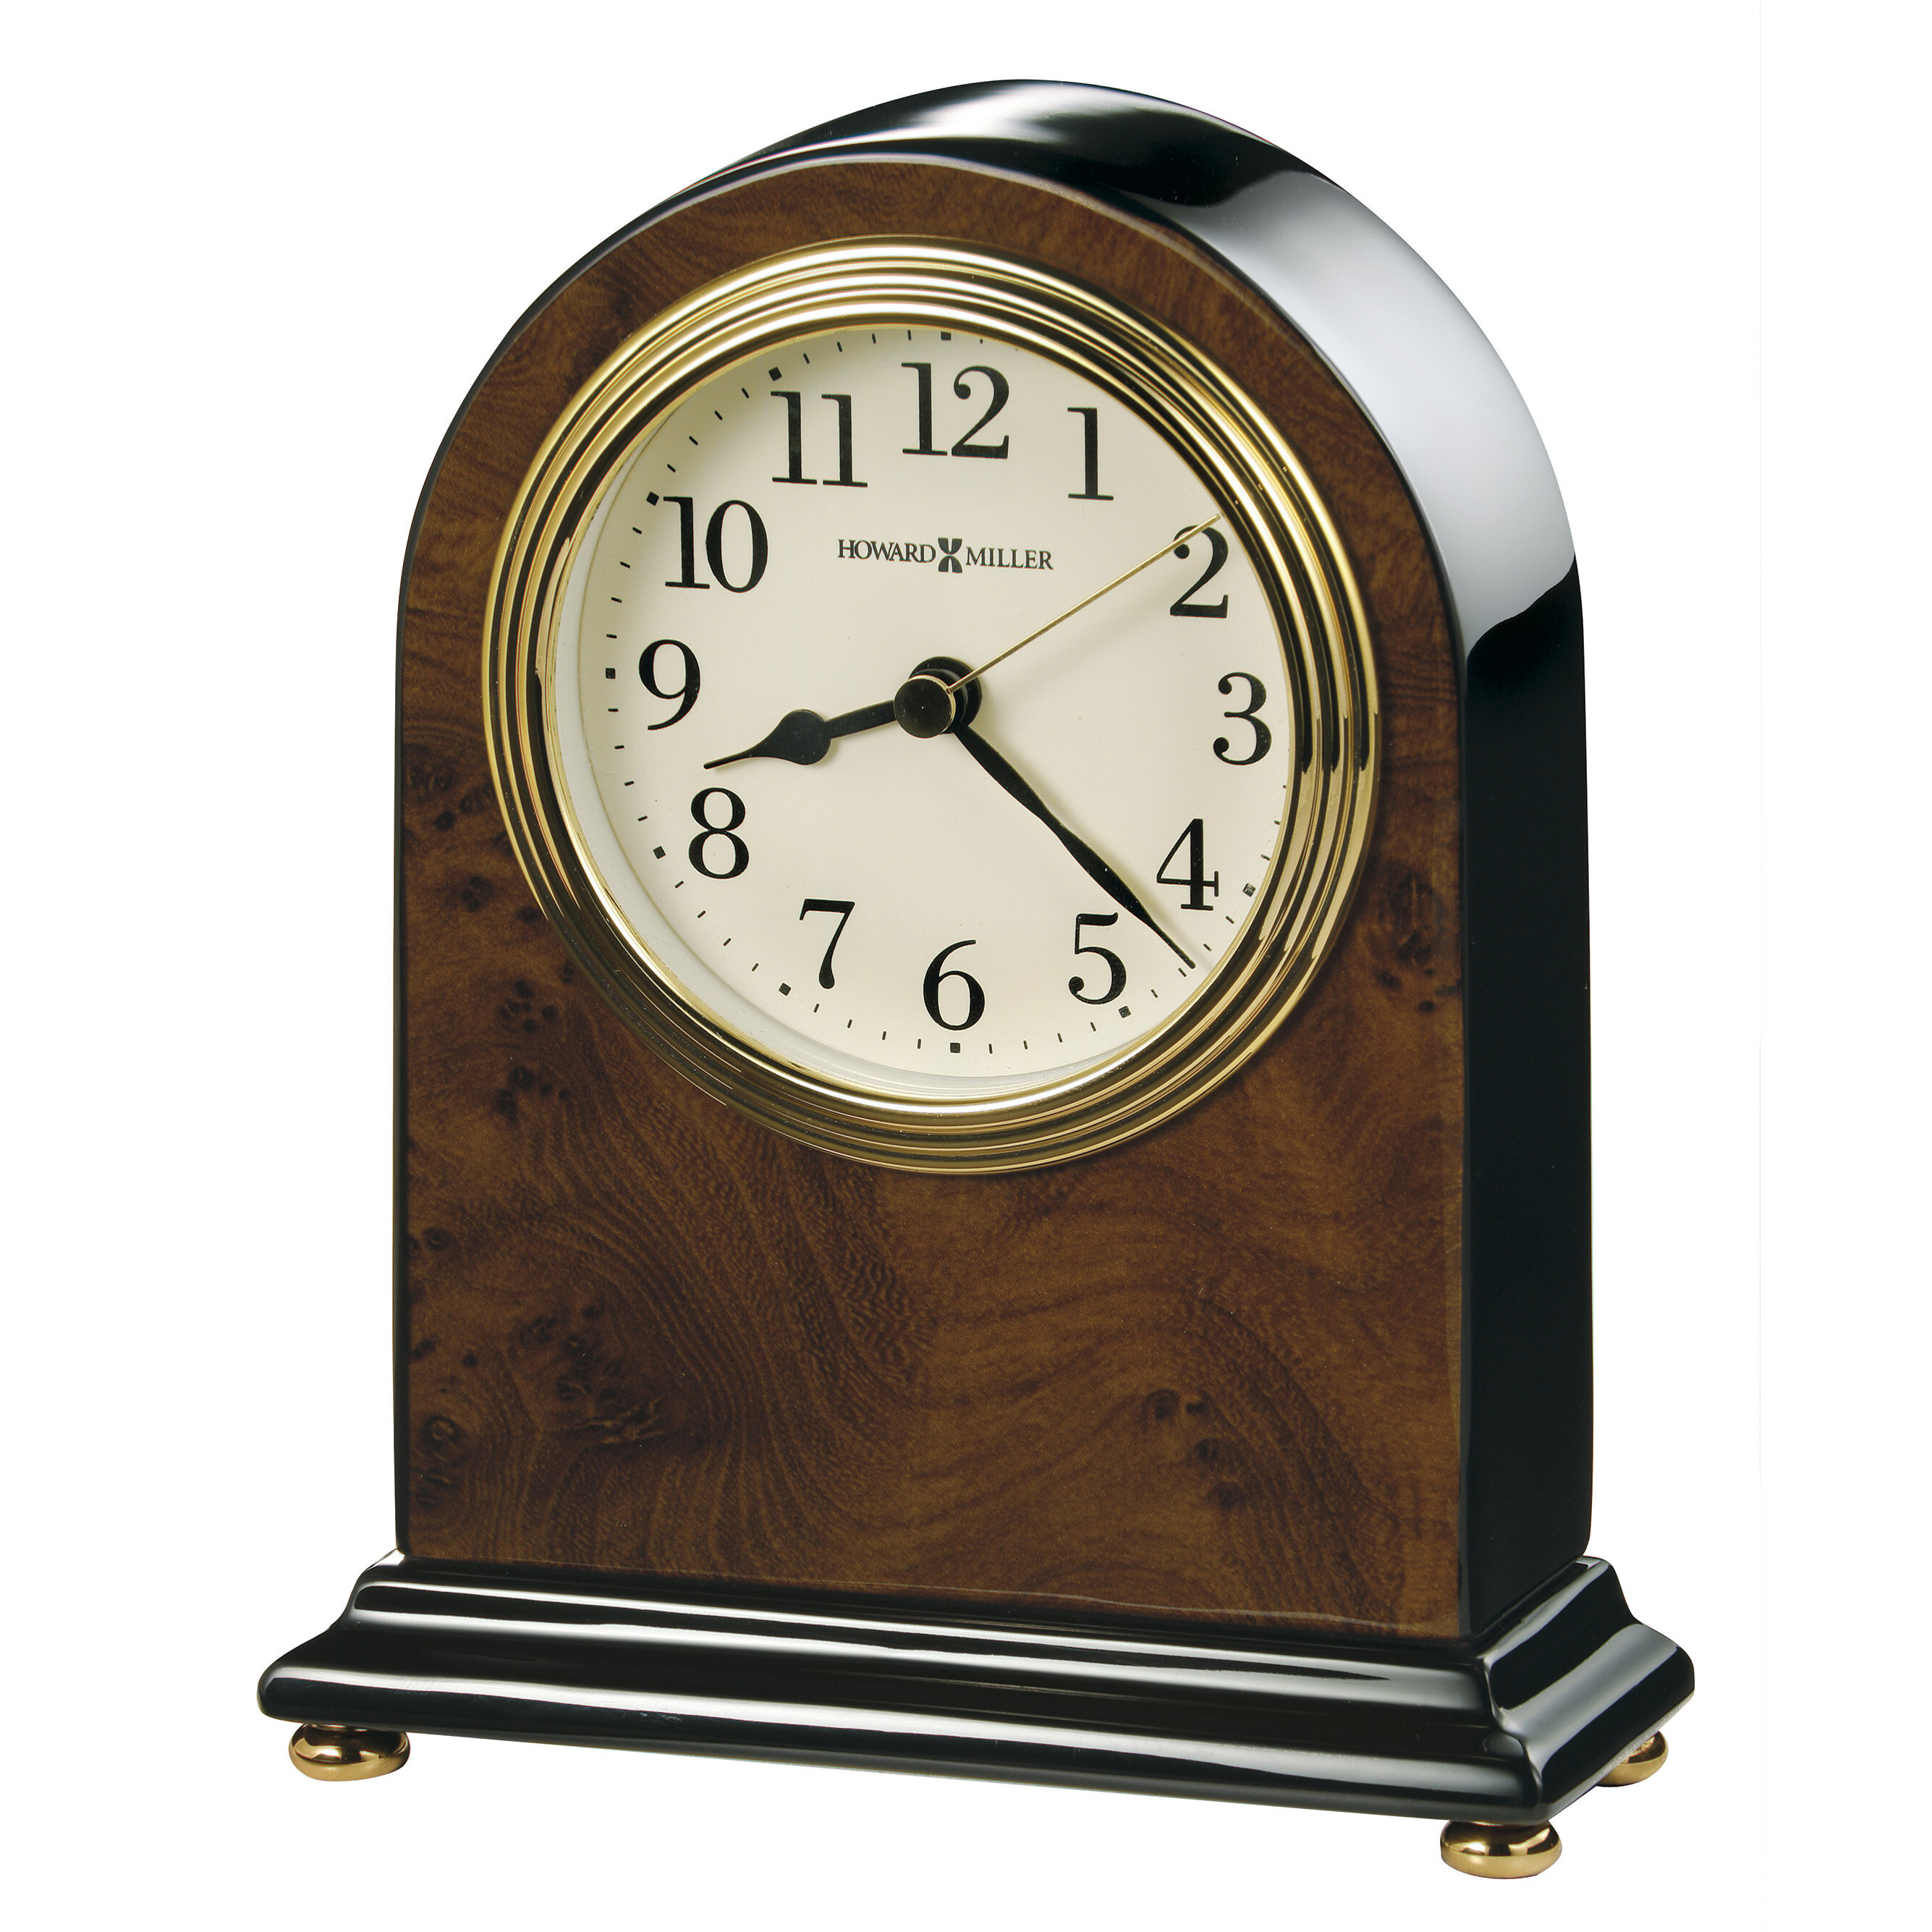 Howard Miller Bedford Table Clock U0026 Reviews | Wayfair